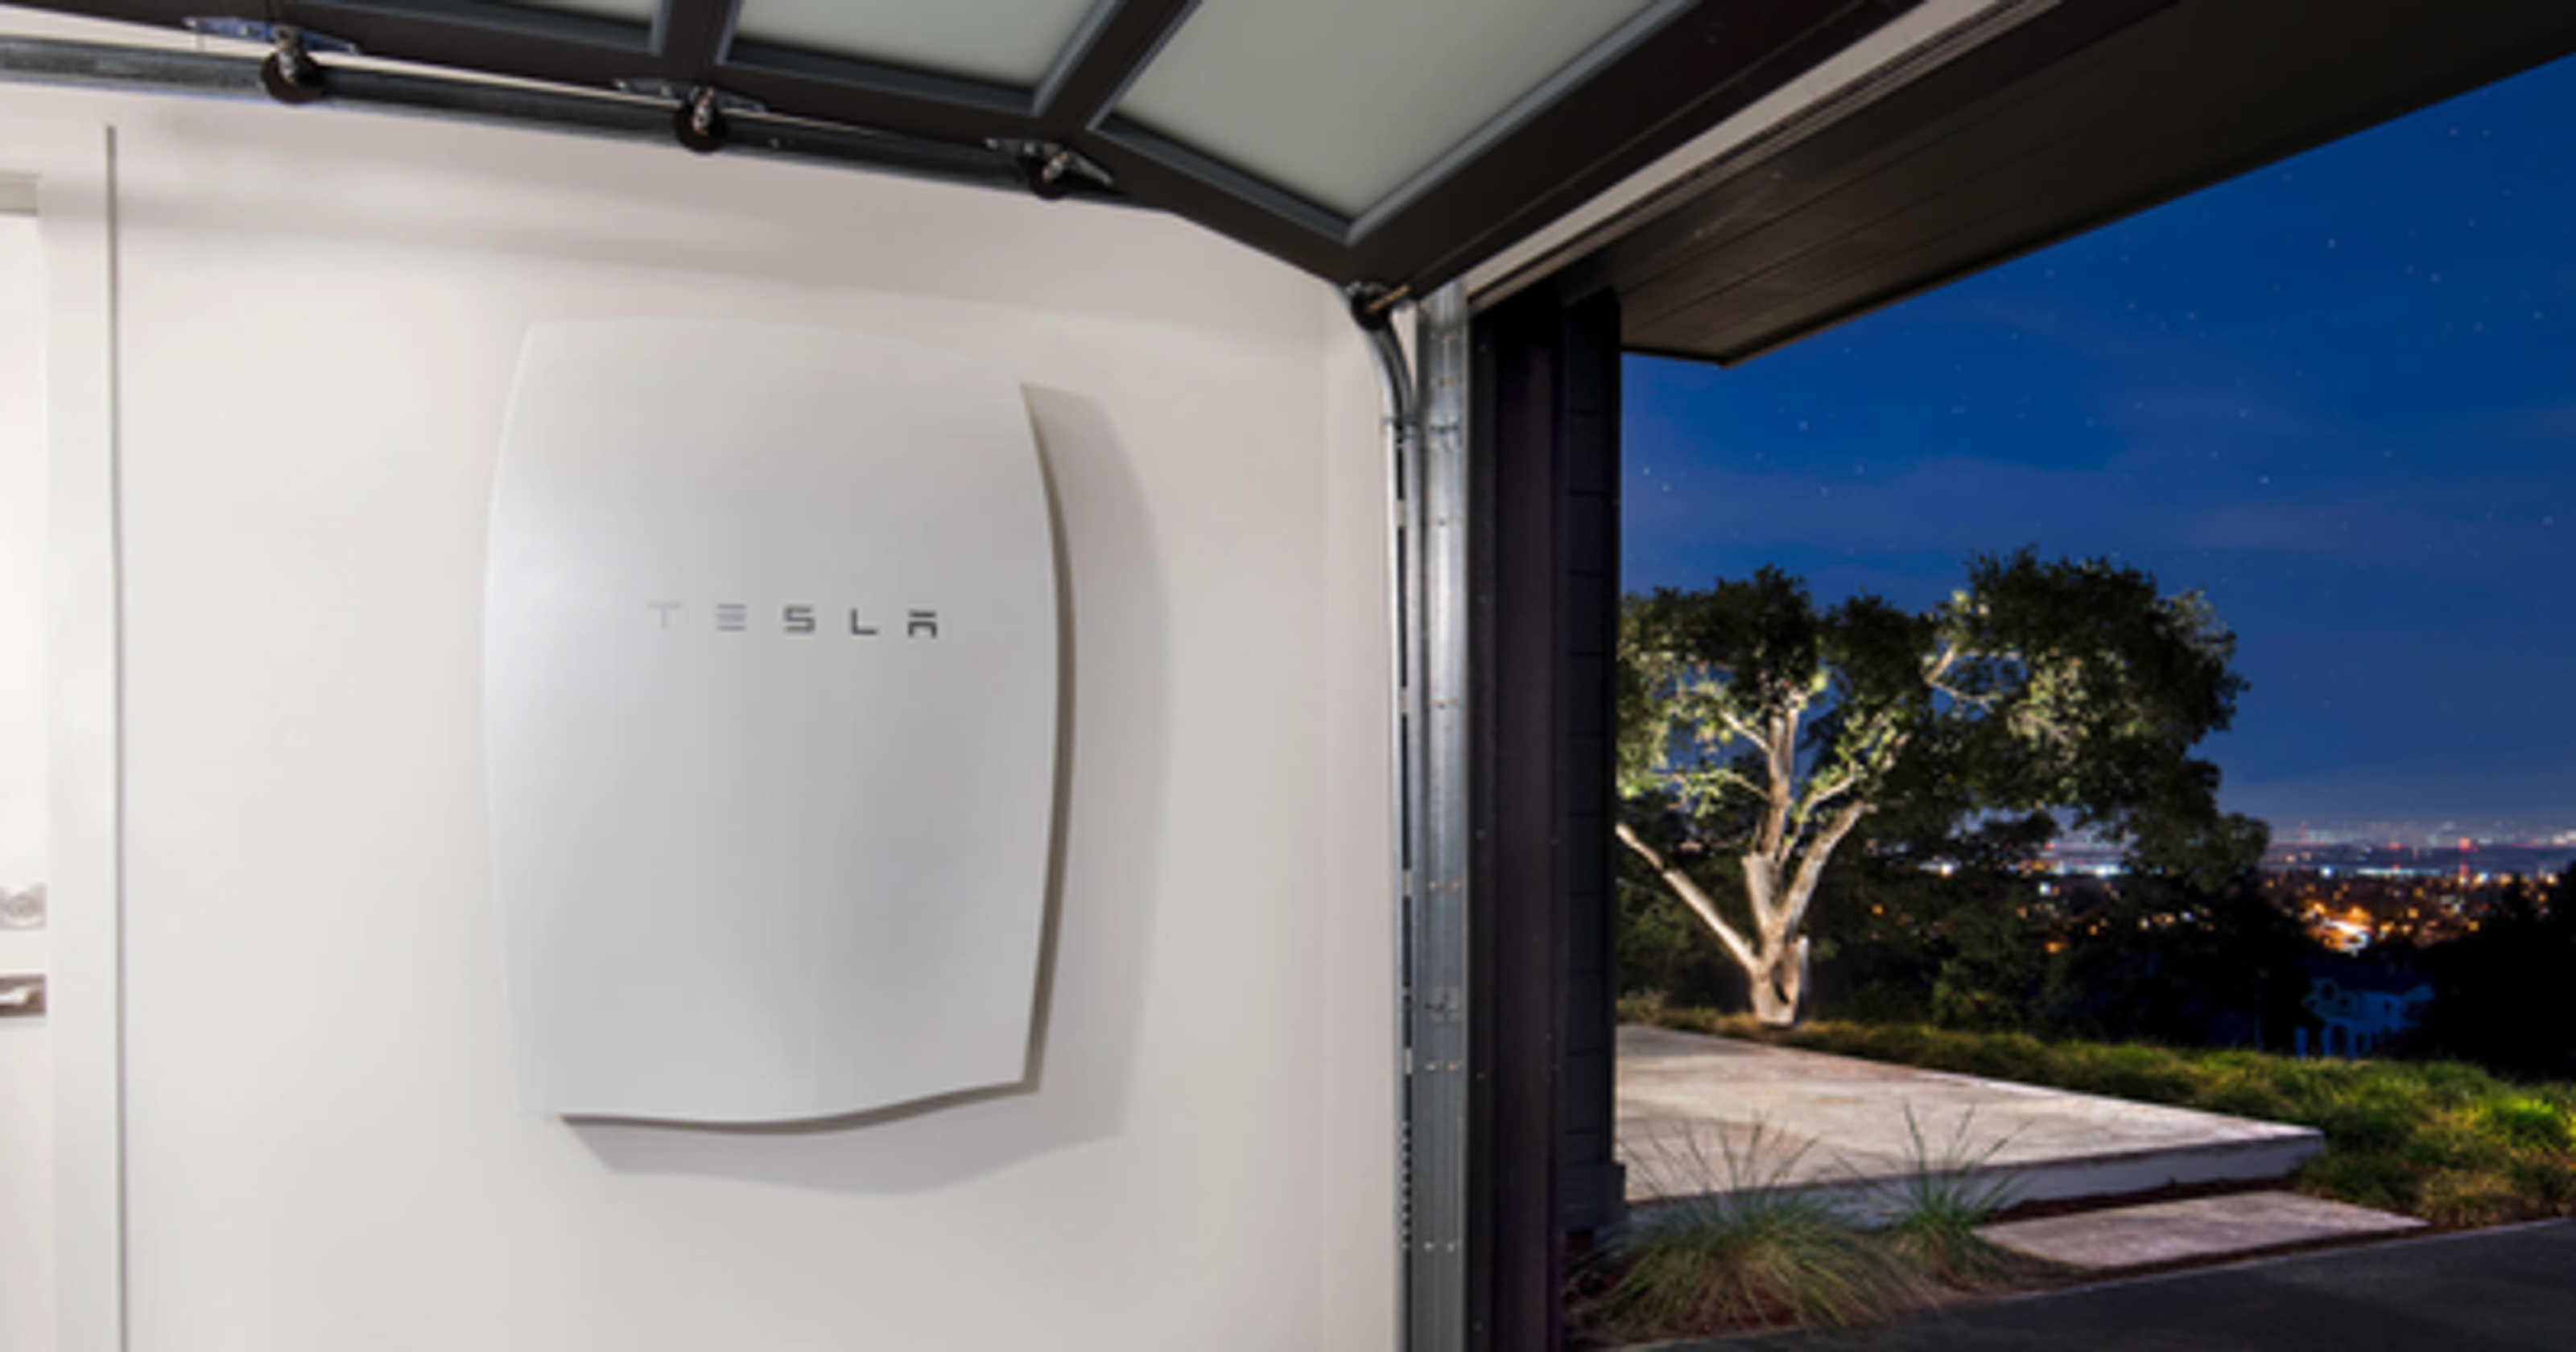 Want Tesla solar storage? You'll wait as Elon Musk's vision